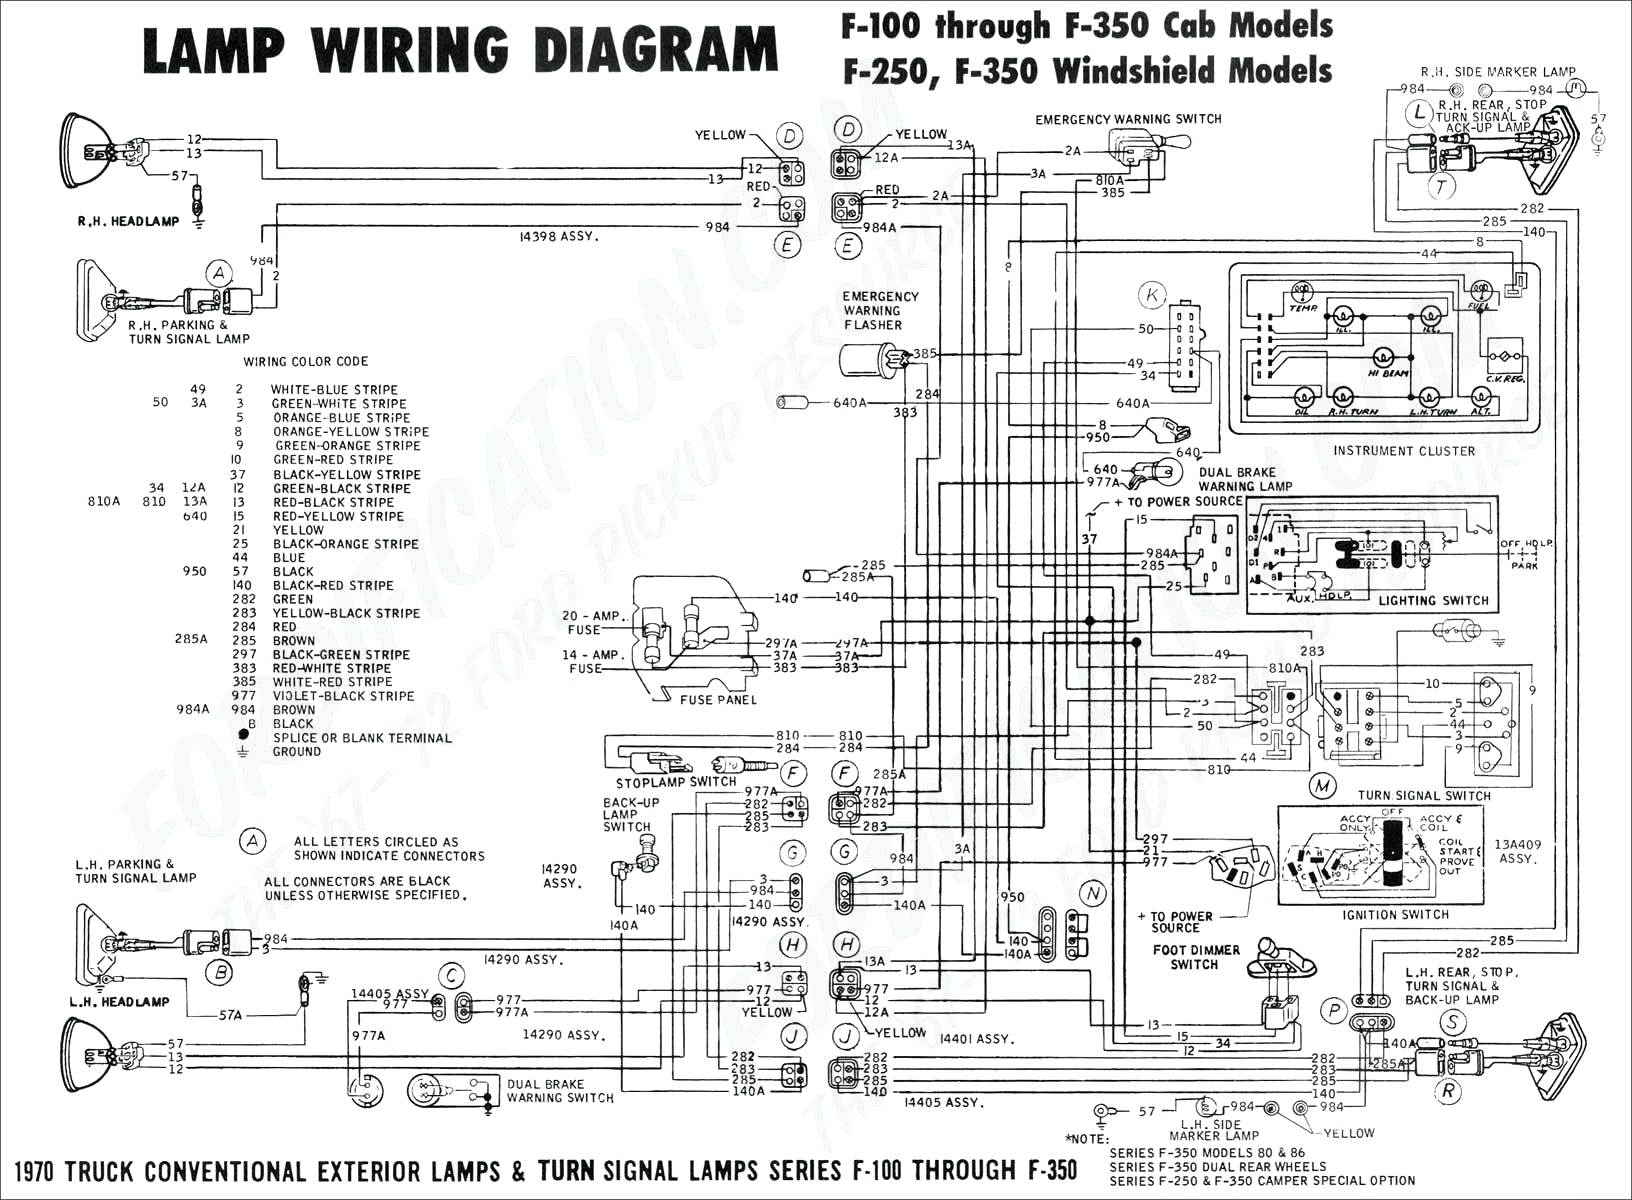 2000 Ford F250 Super Duty Wiring Diagram | Wiring Diagram  F Super Duty Trailer Wiring Diagram on 2000 f250 lights wiring diagram, f250 power window wire diagram, 2000 f250 trailer plug wiring, 2002 f250 trailer wiring diagram, 2003 ford f-250 wiring diagram, 1997 ford f-250 wiring diagram, 2000 f250 motor wiring diagram, 2000 7.3l engine diagram, 2000 f250 fuse panel diagram,